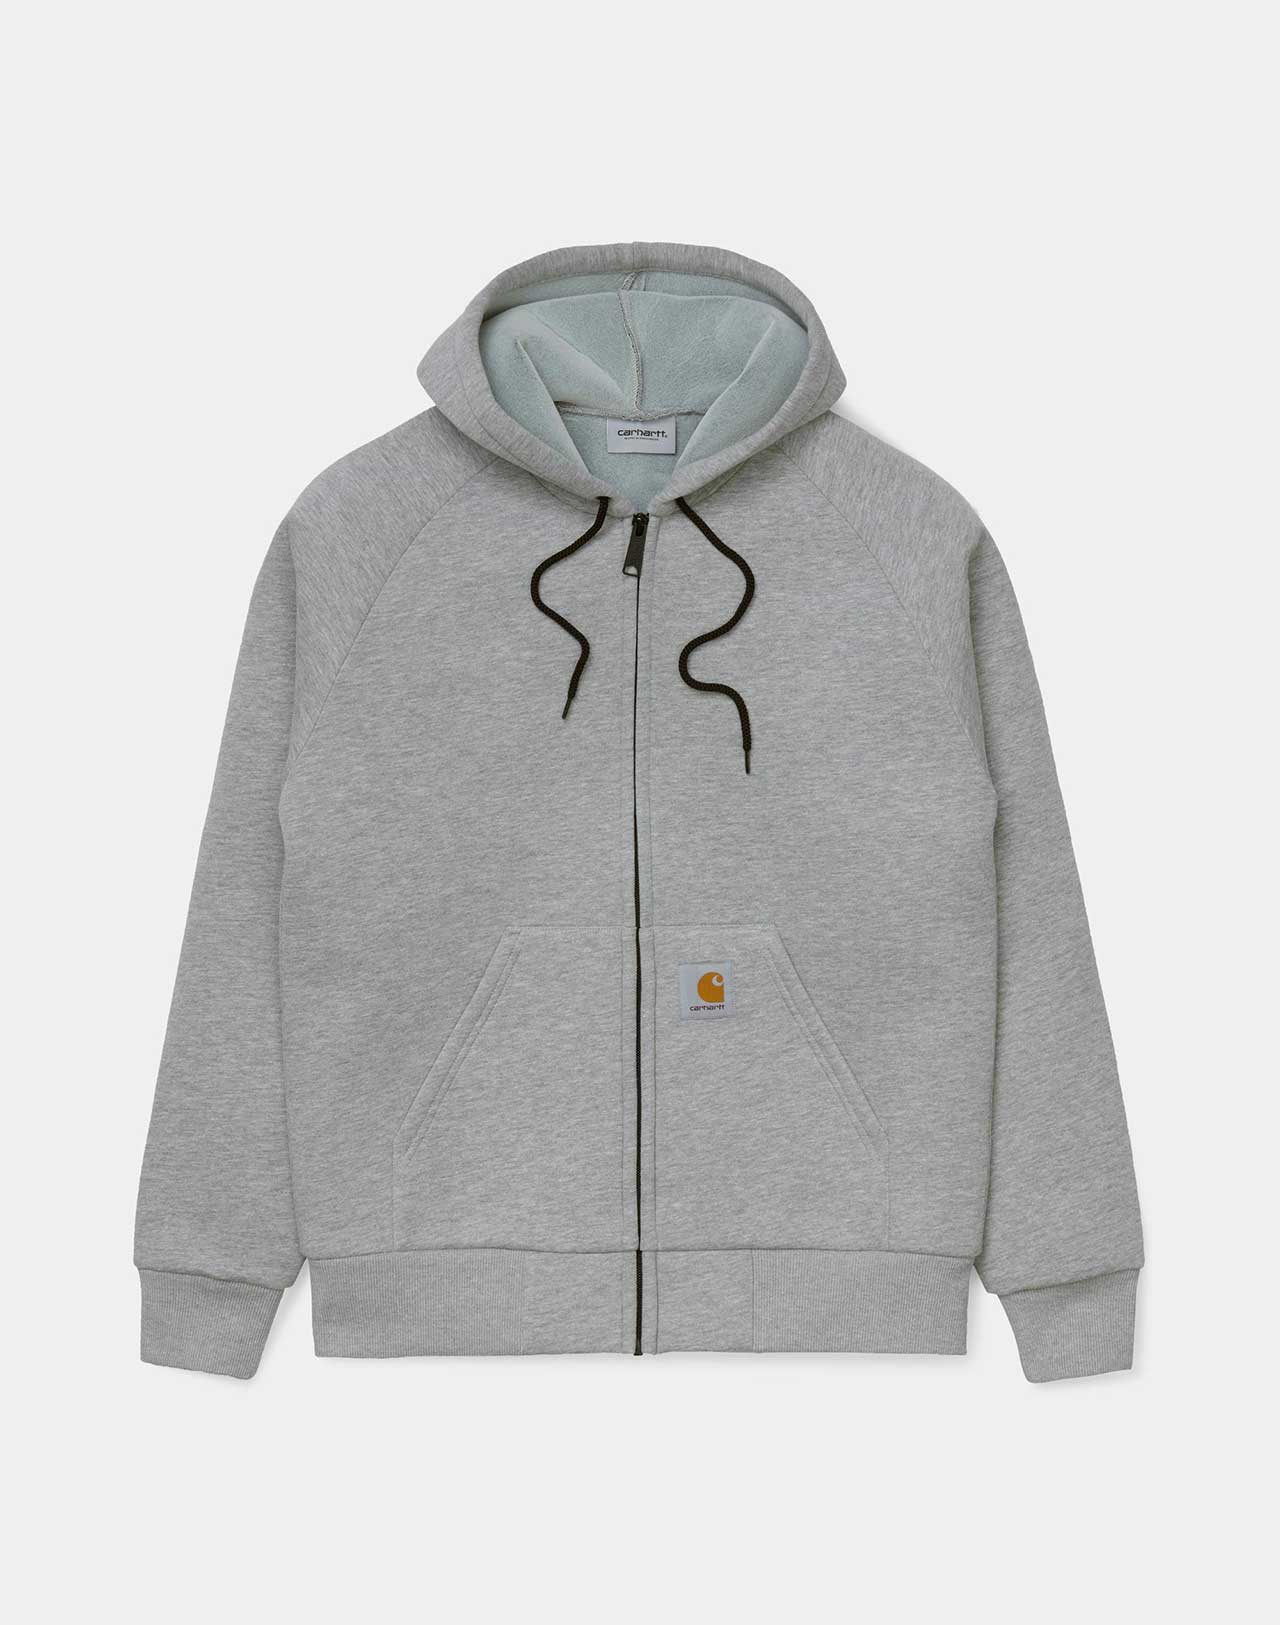 Veste Car Lux hooded Grey Heather Carhartt  grise